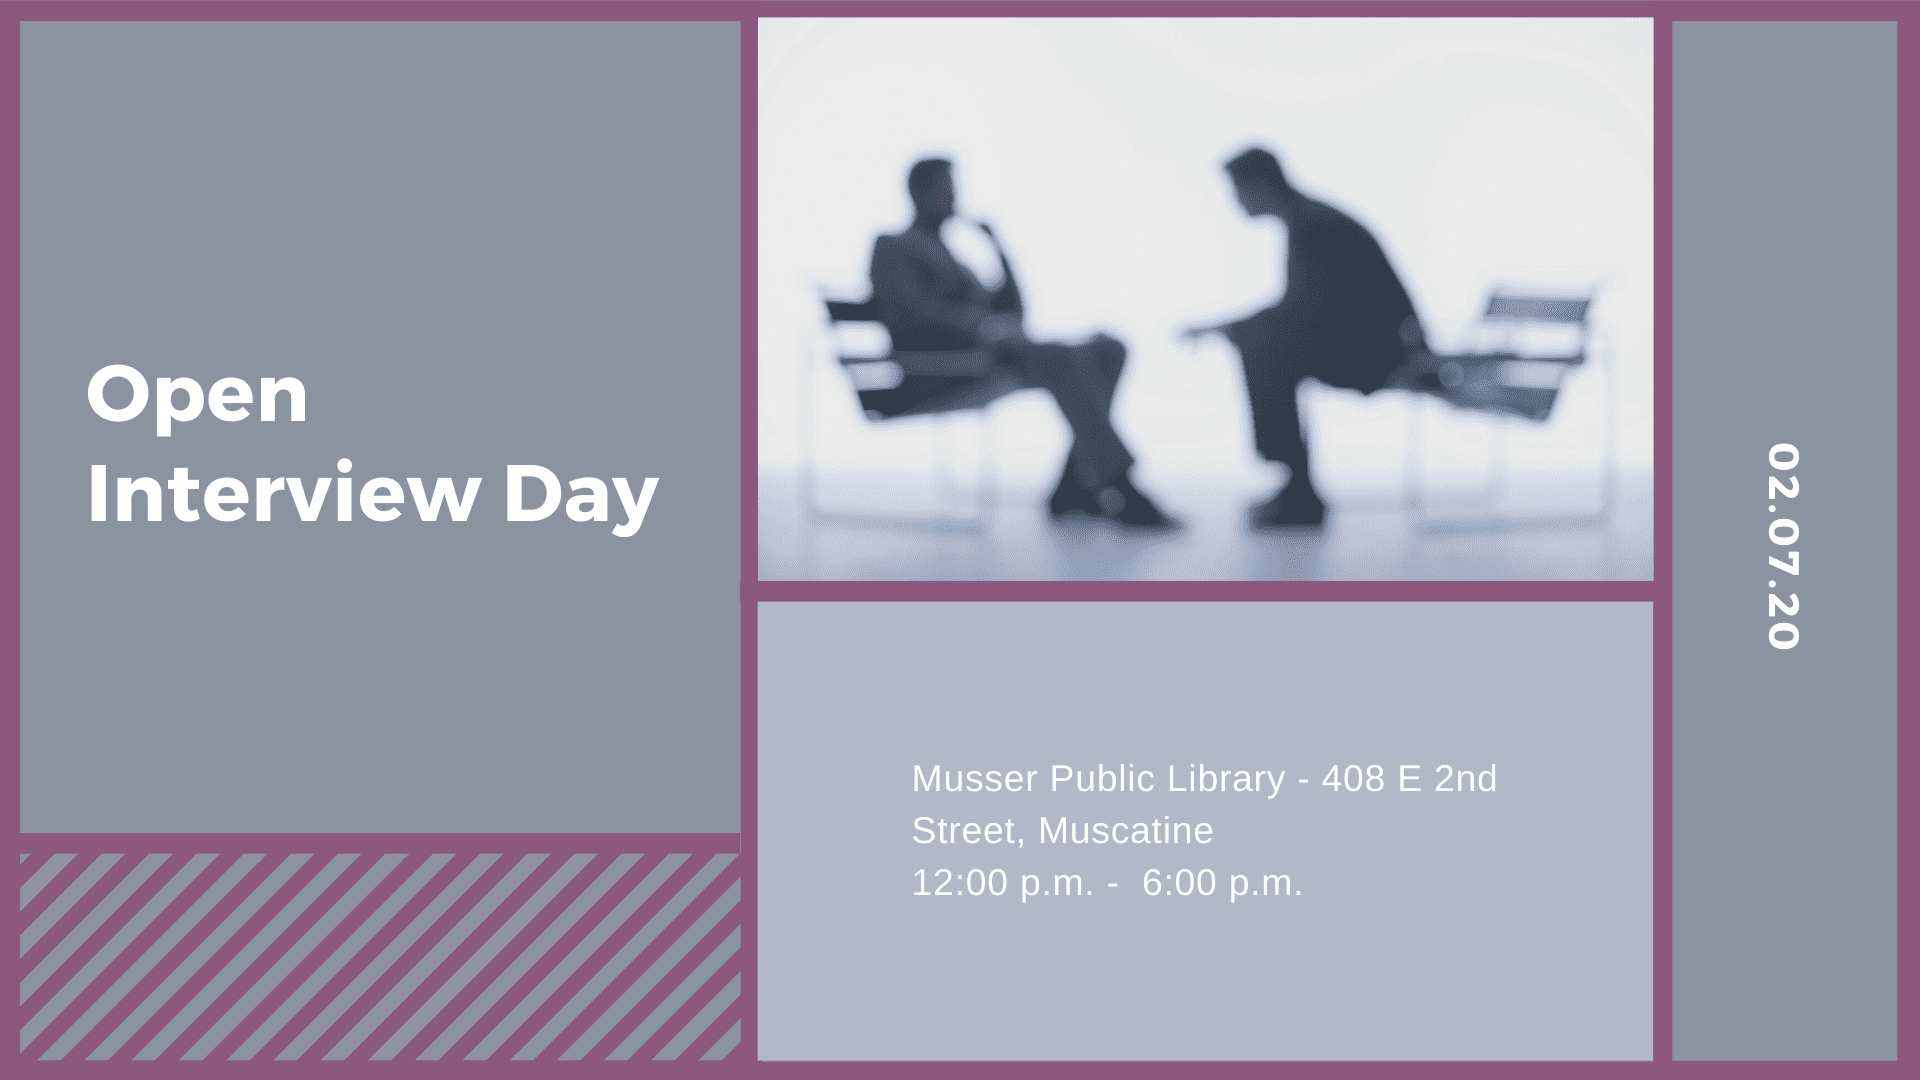 Open Interview Day